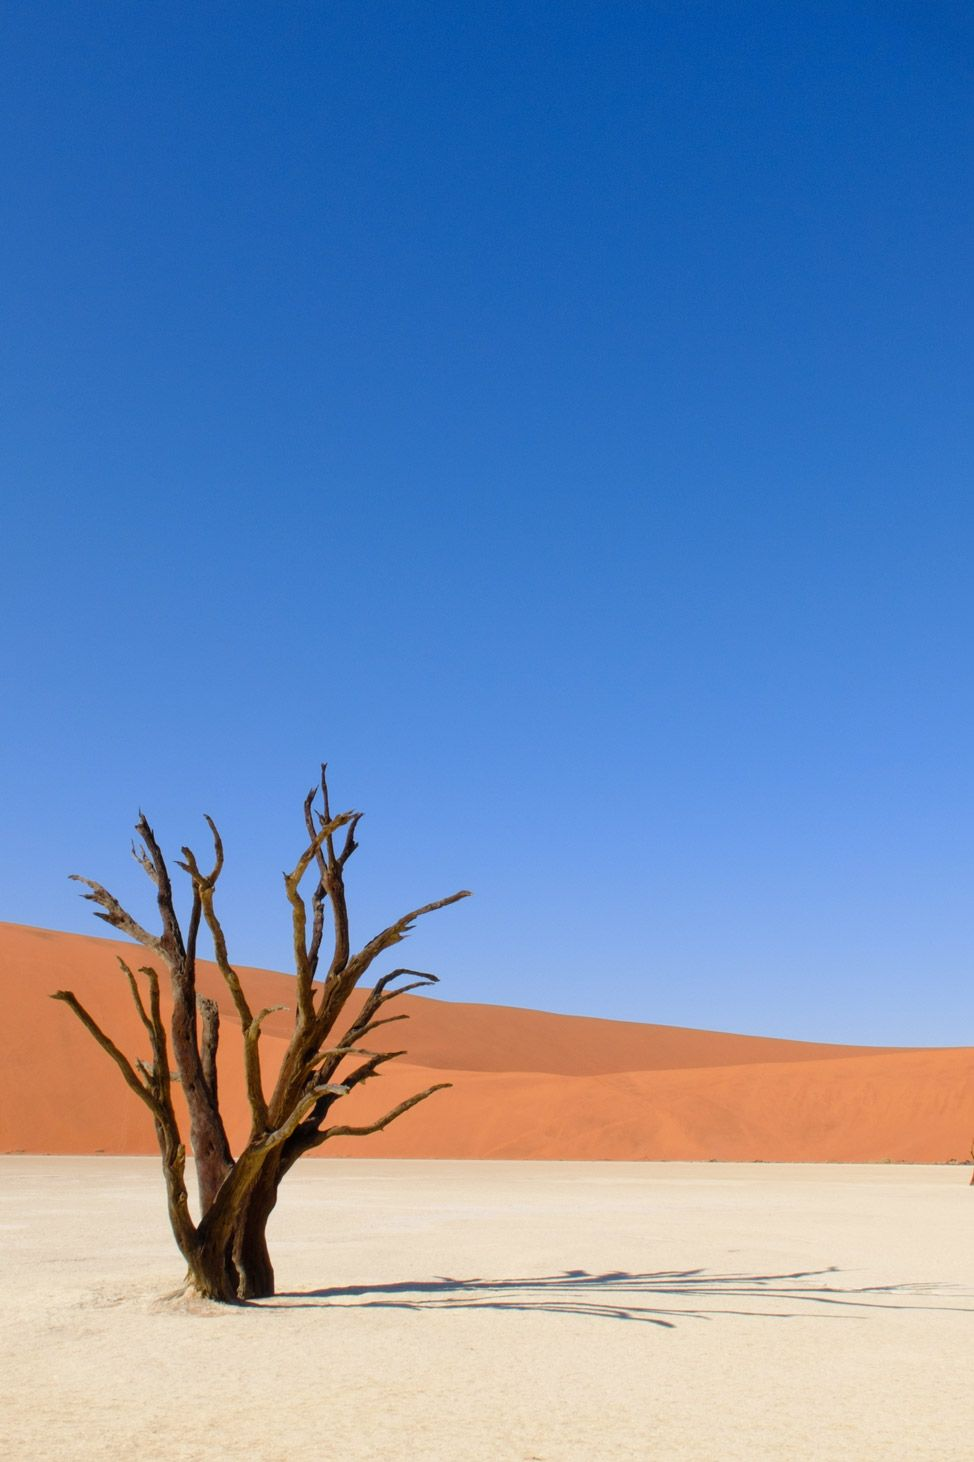 Lonely Tree - it reminds me of my own visit to Deadvlei in Namibia: an incredible place! http://www.zigzagonearth.com/sossusvlei-dunes-deadvlei-dead-lake/